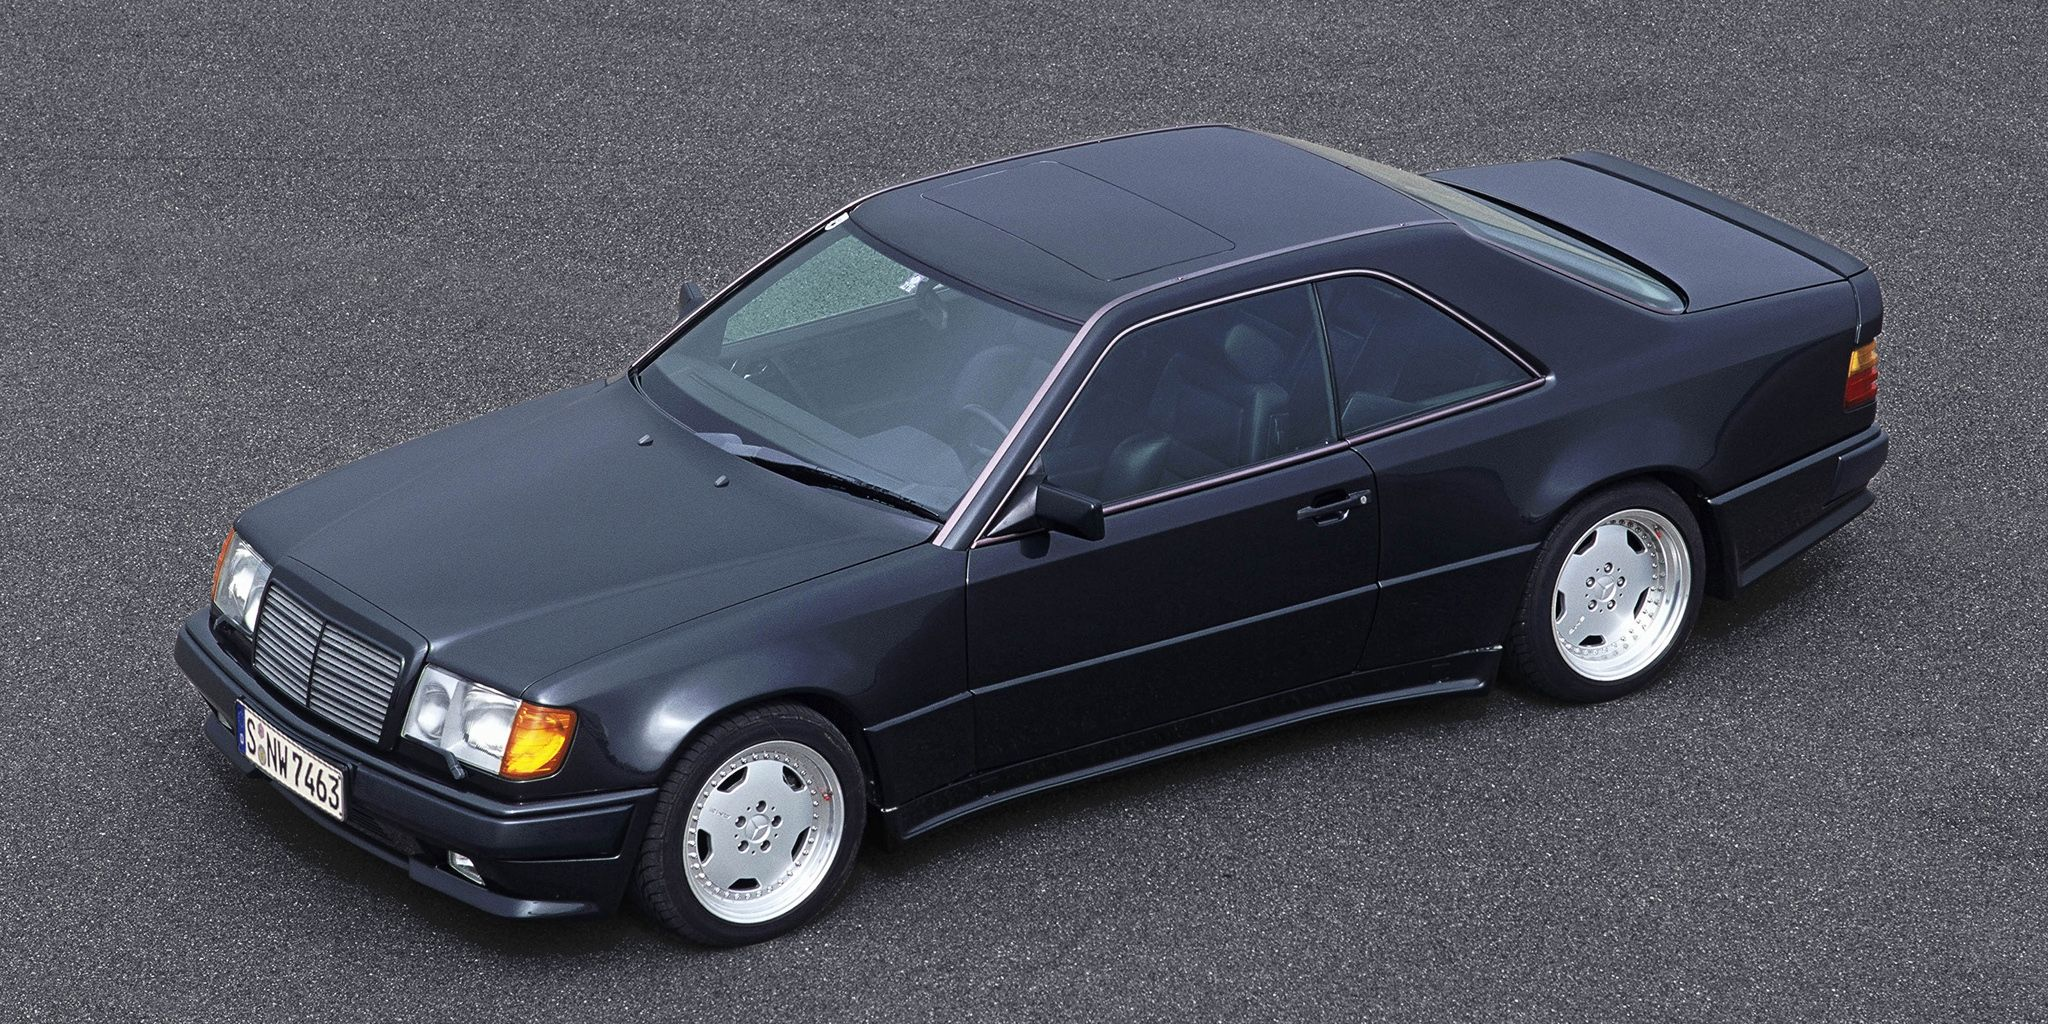 <p>Yep, the name means the same in German as it does in English. The Hammer could sprint to 60 in five seconds. In <em>1986</em>. This was the fastest people-carrying sedan in its day with a 5.6 liter V8 producing 360 bhp.</p>